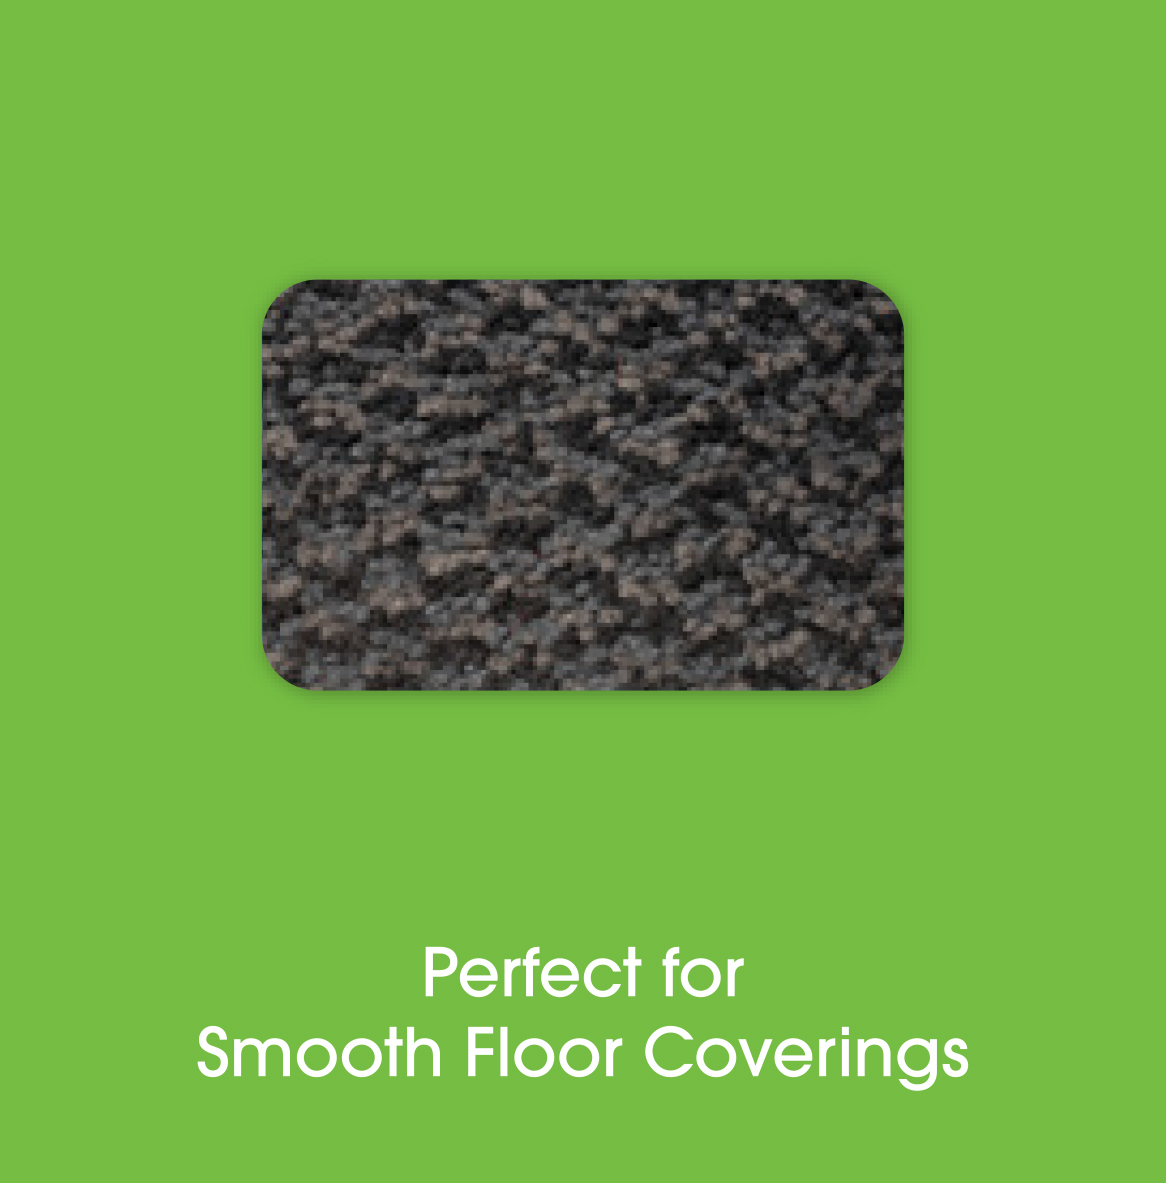 Standard Plus Smooth Backed Office Mats - managed floor solutions